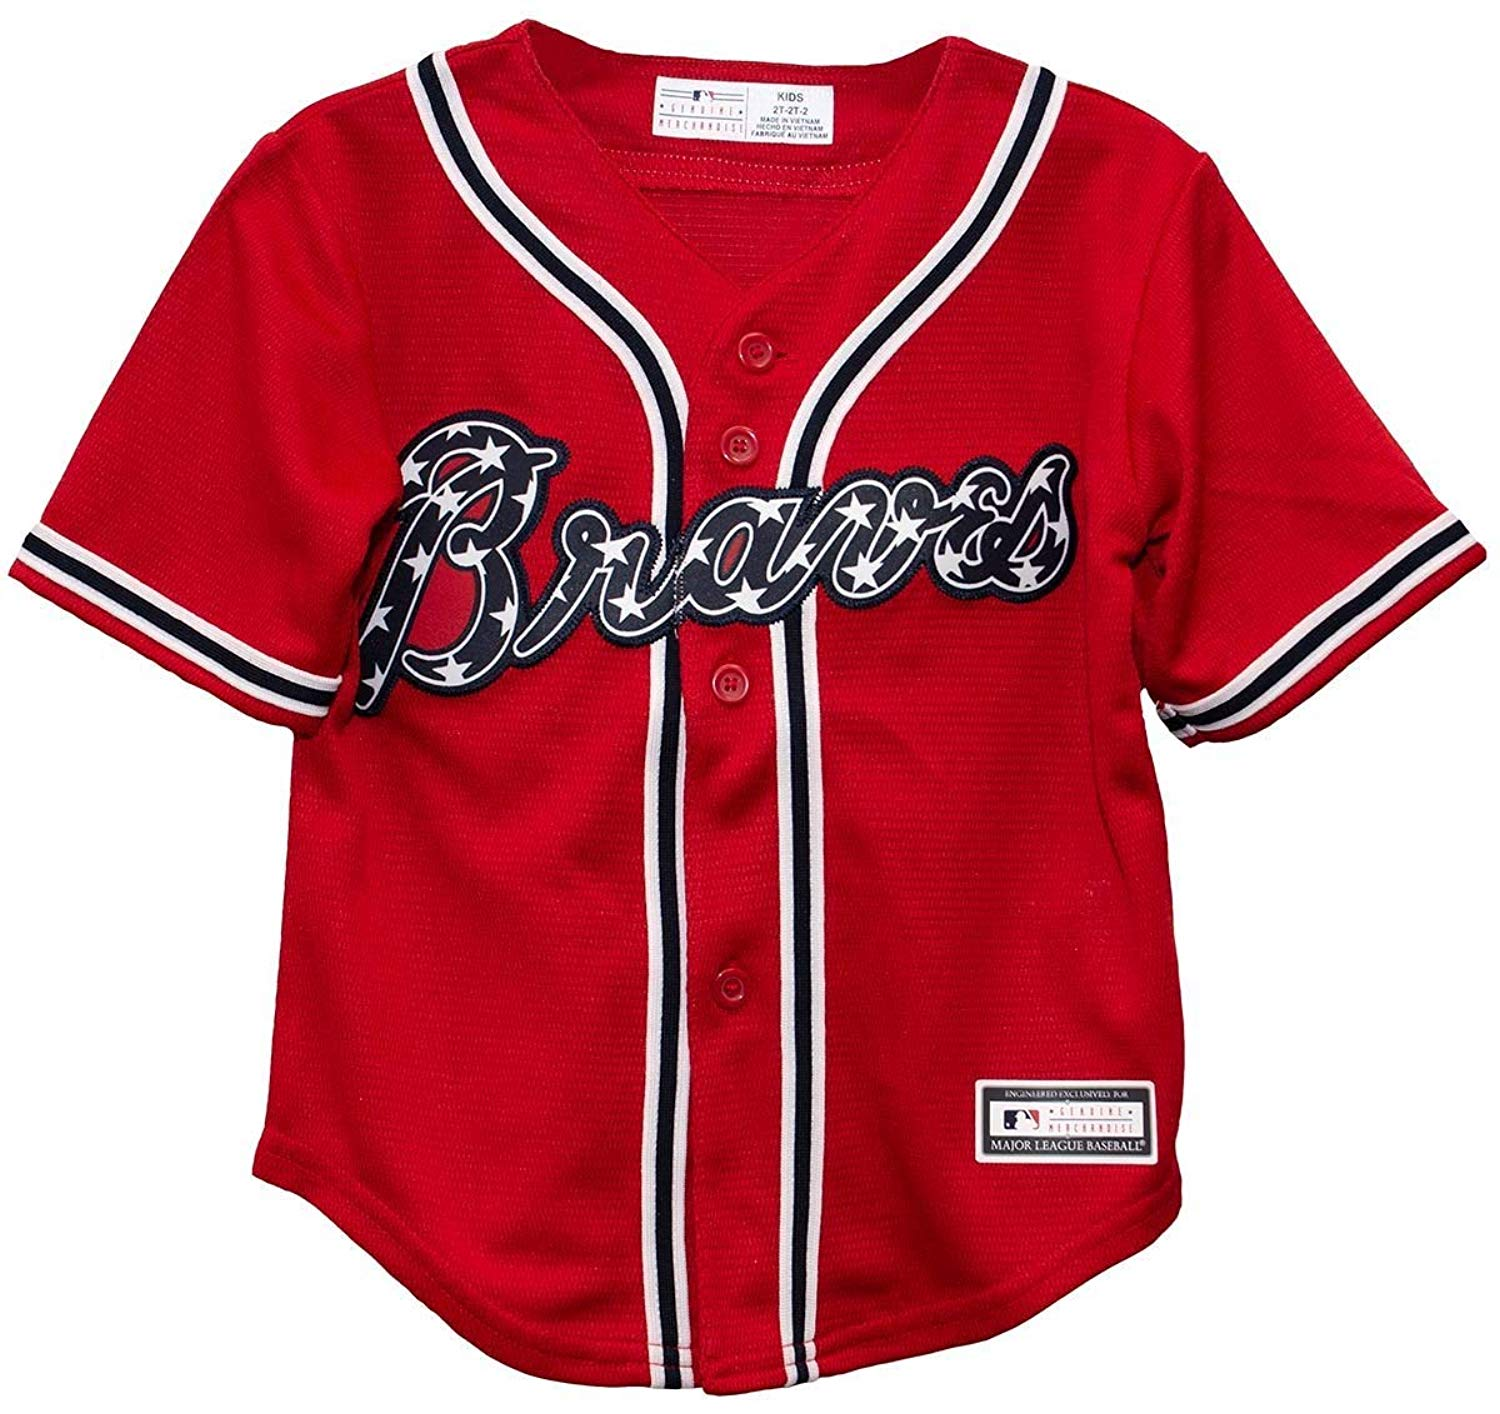 b2f0228a5 Get Quotations · Outerstuff Atlanta Braves Blank Red Youth Cool Base  Alternate Jersey